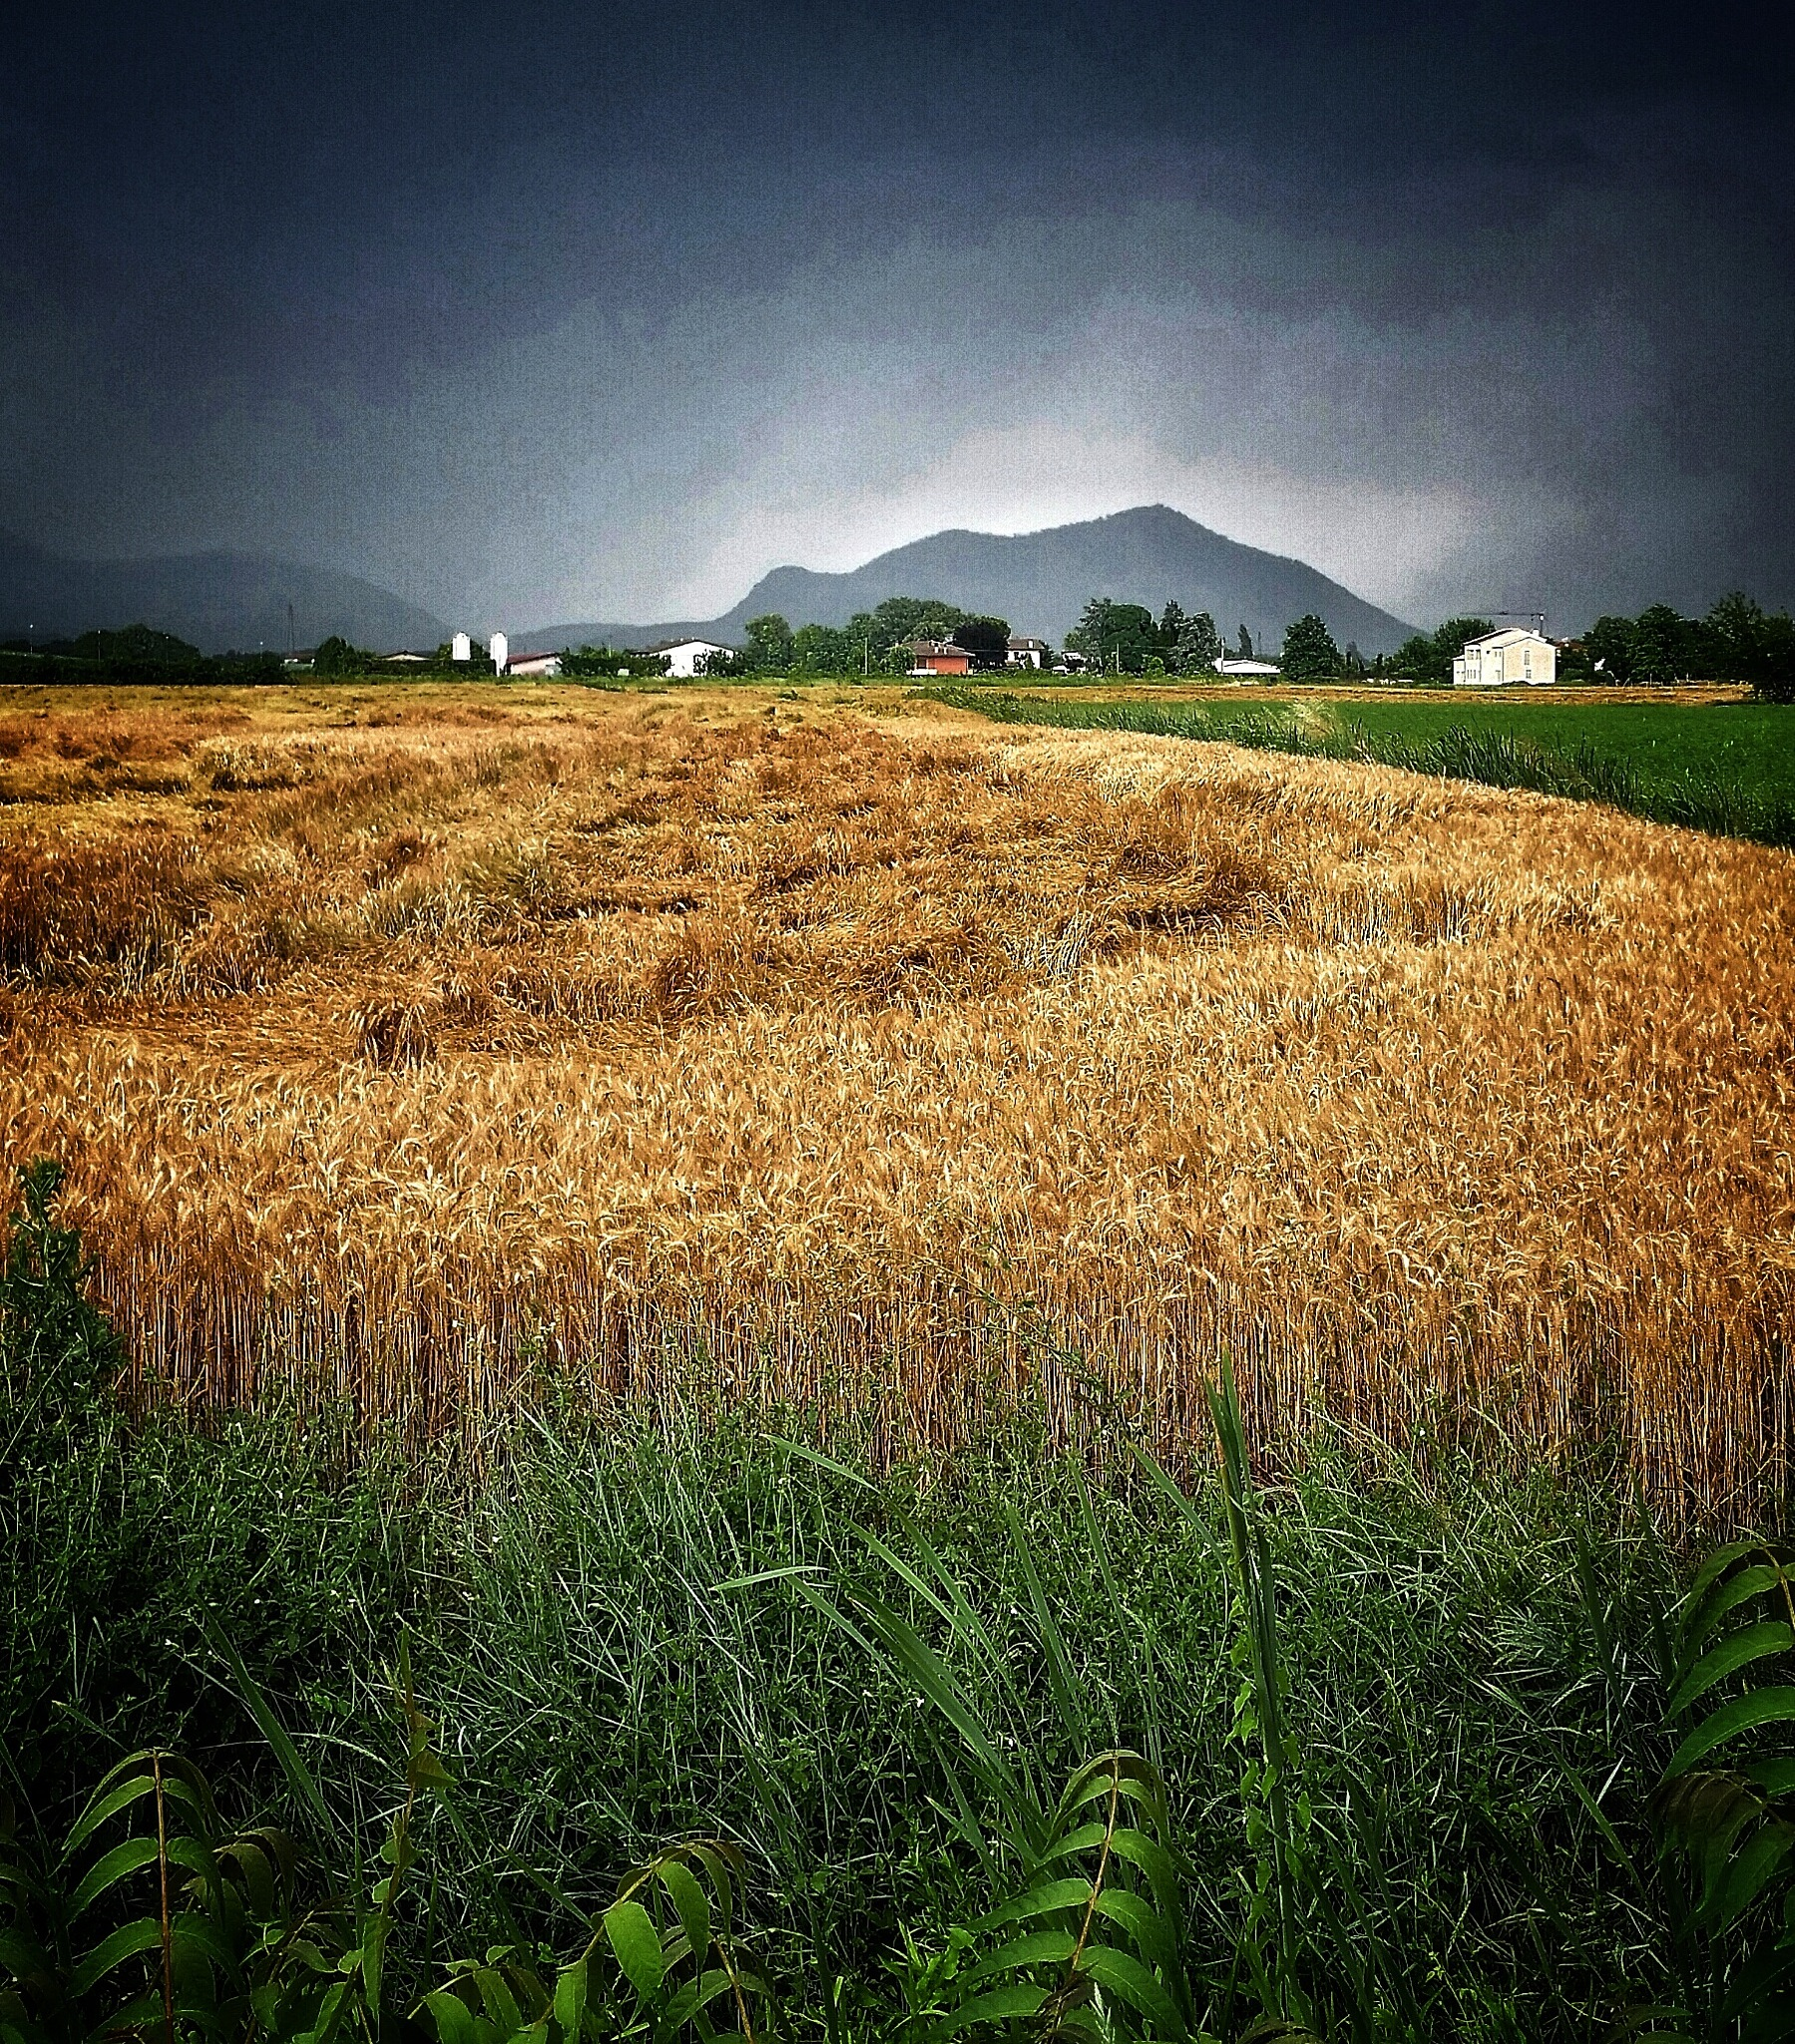 Wheat field after a storm by Claudia Farolfi